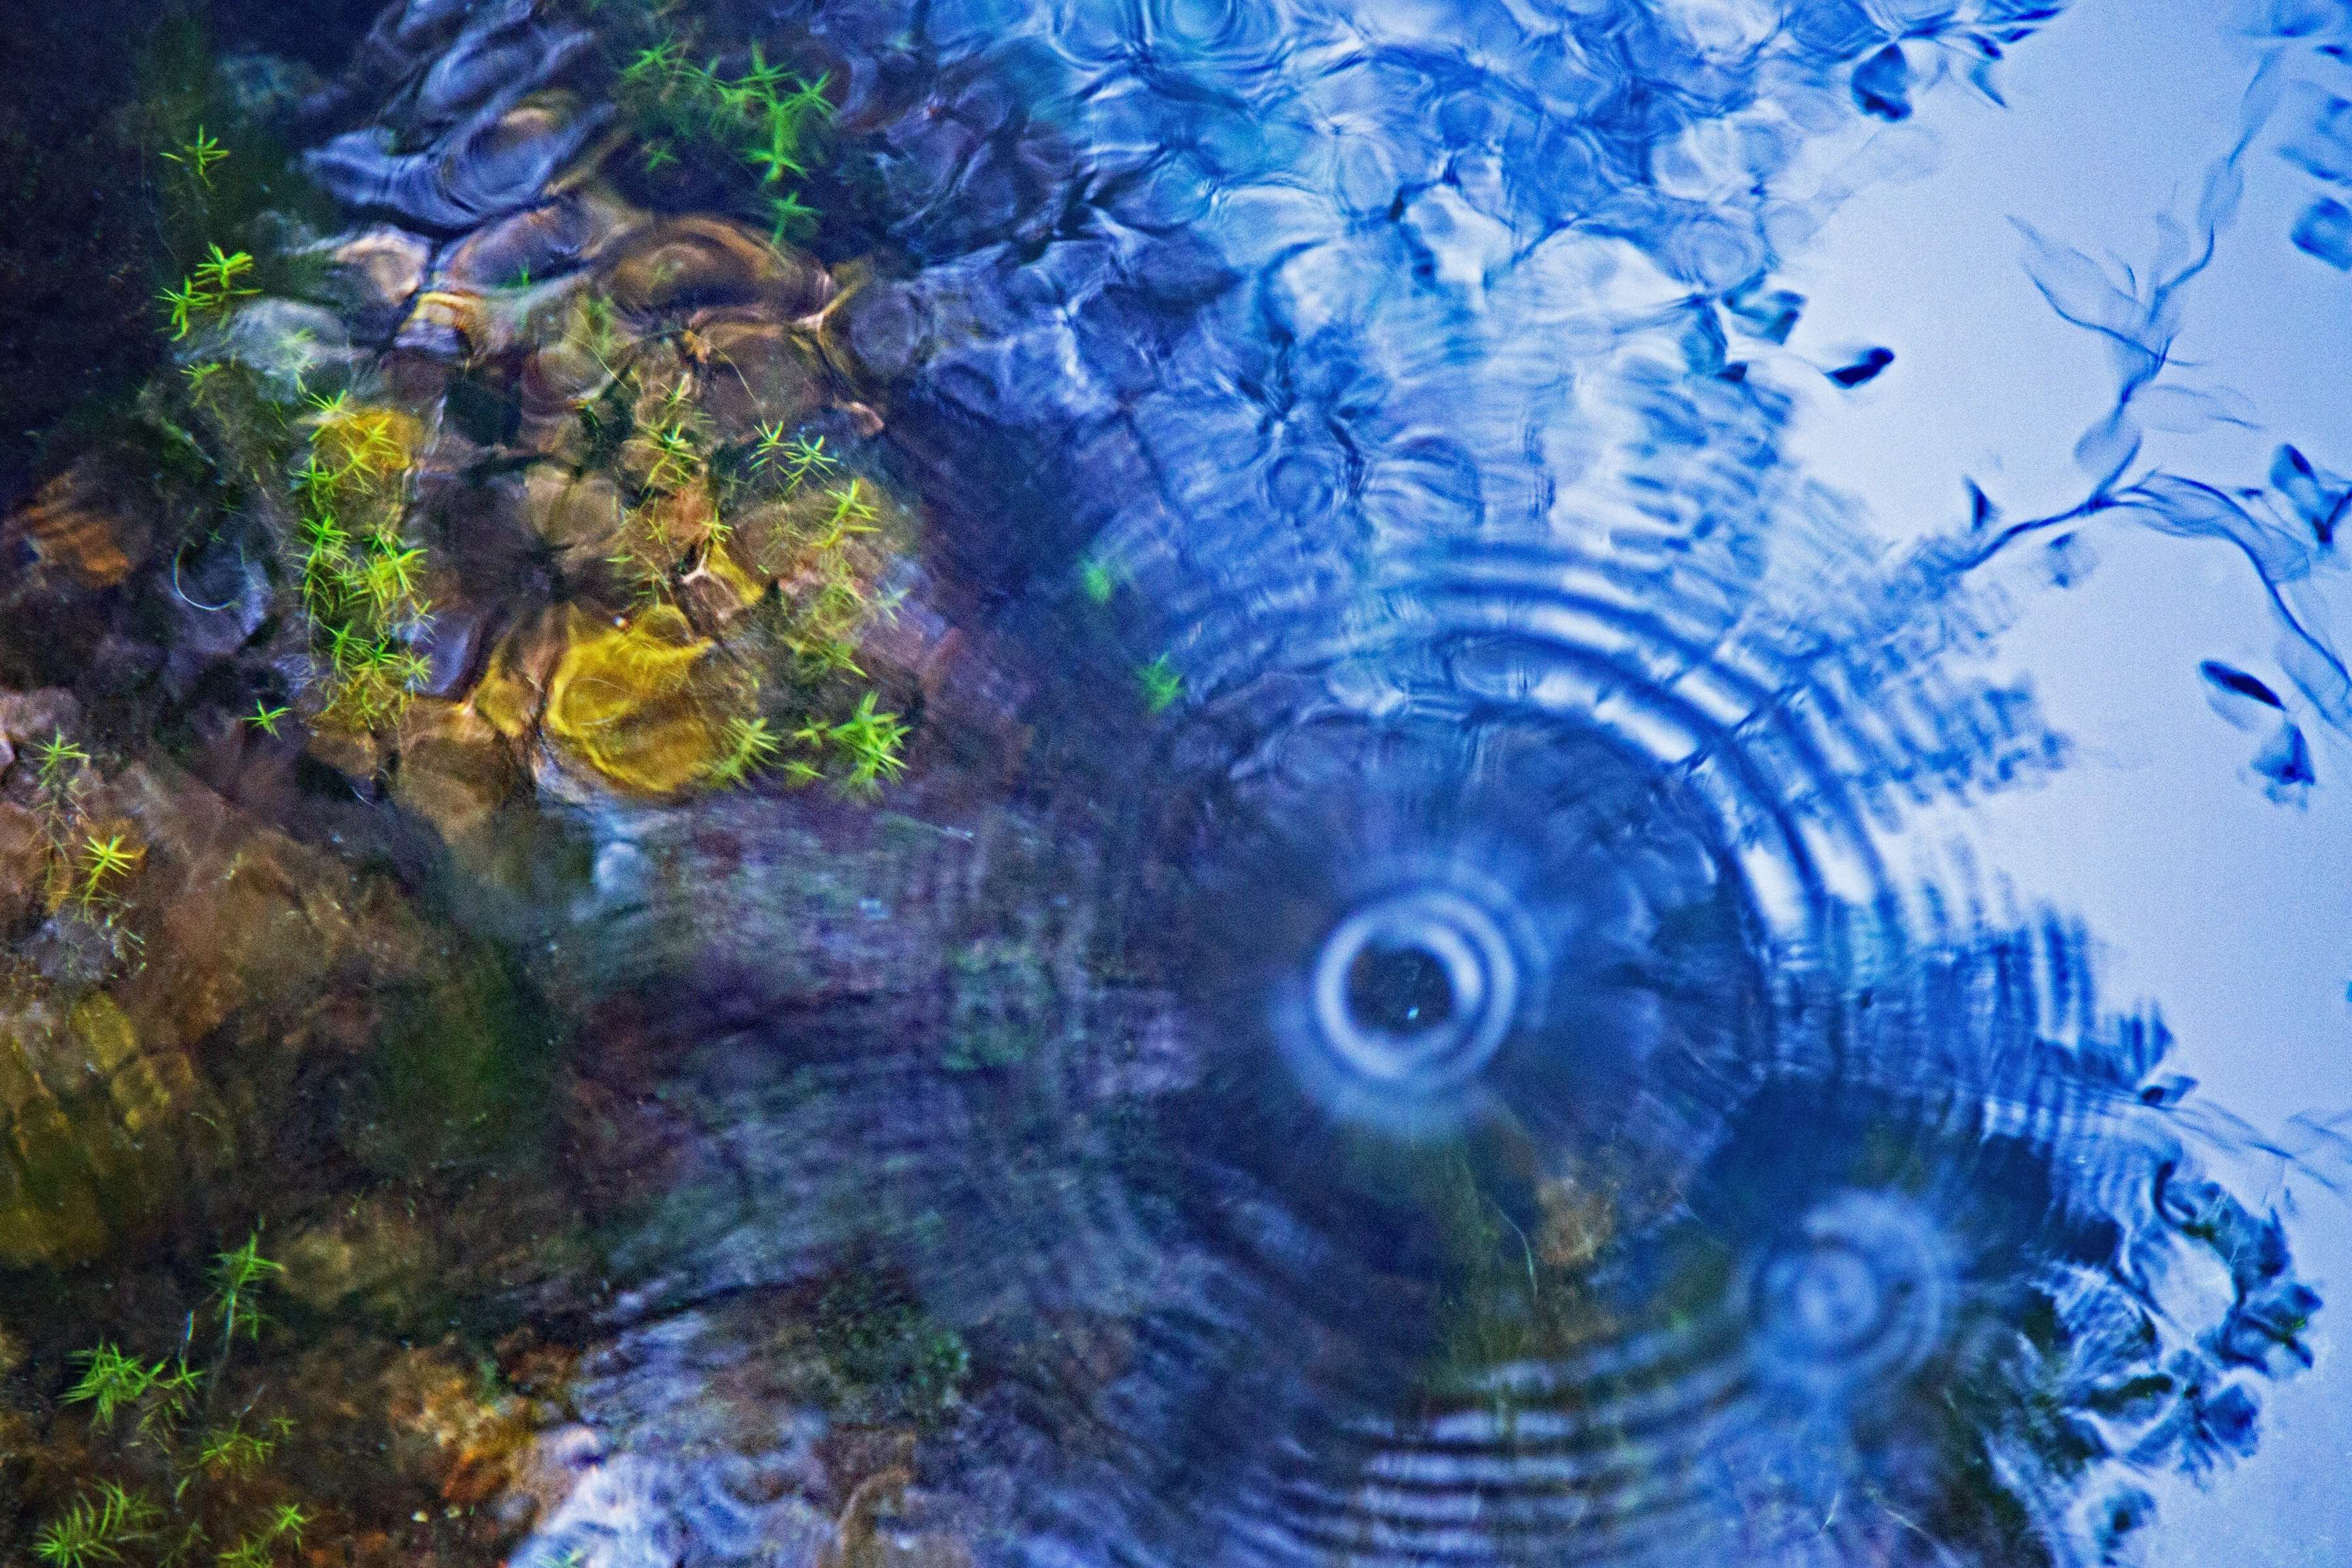 Fragile and powerful, Blue Spring is protected so we can stand on a platform and enjoy its spirit.. its art